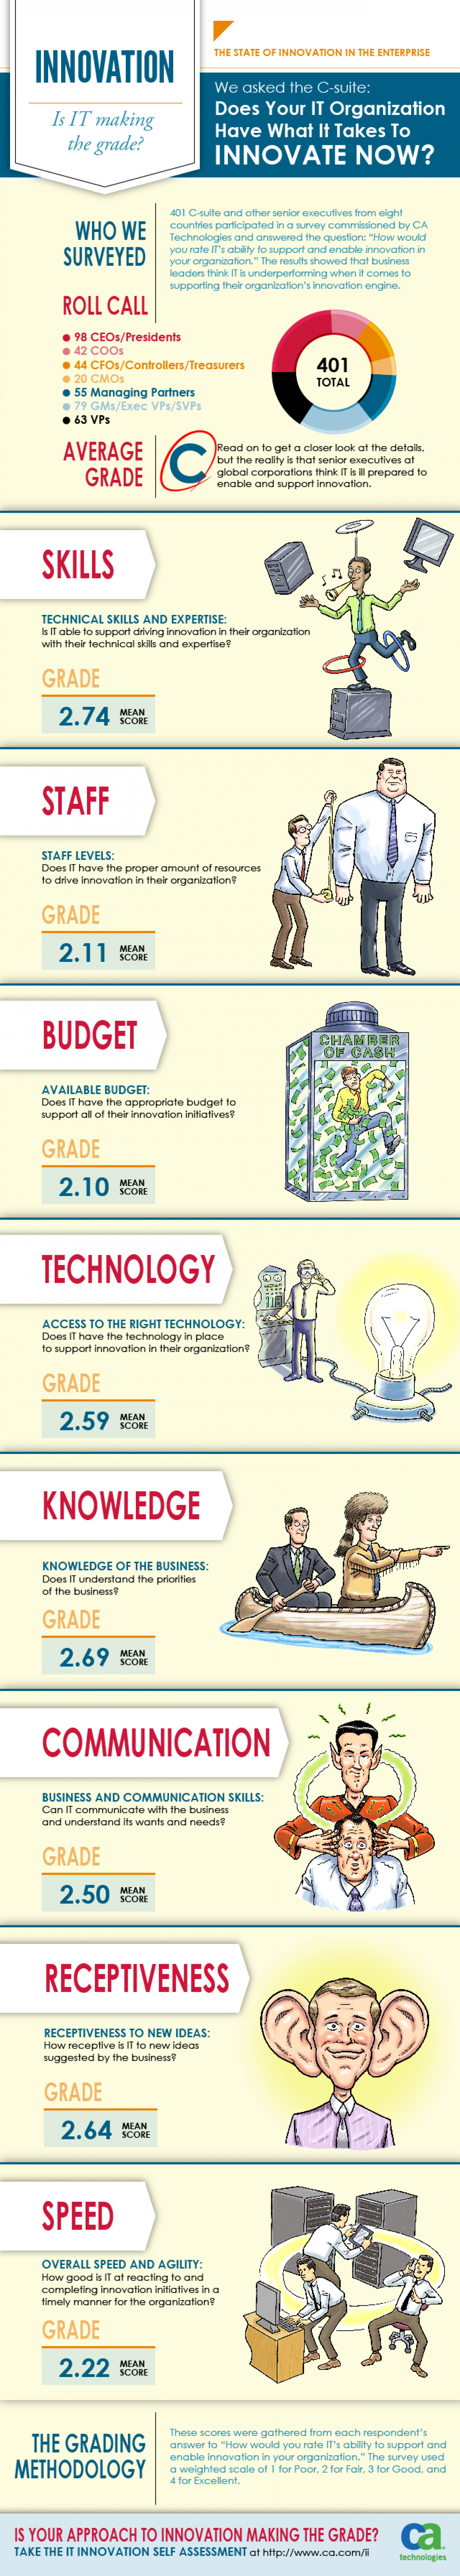 Innovation: Is IT Making the Grade? Infographic